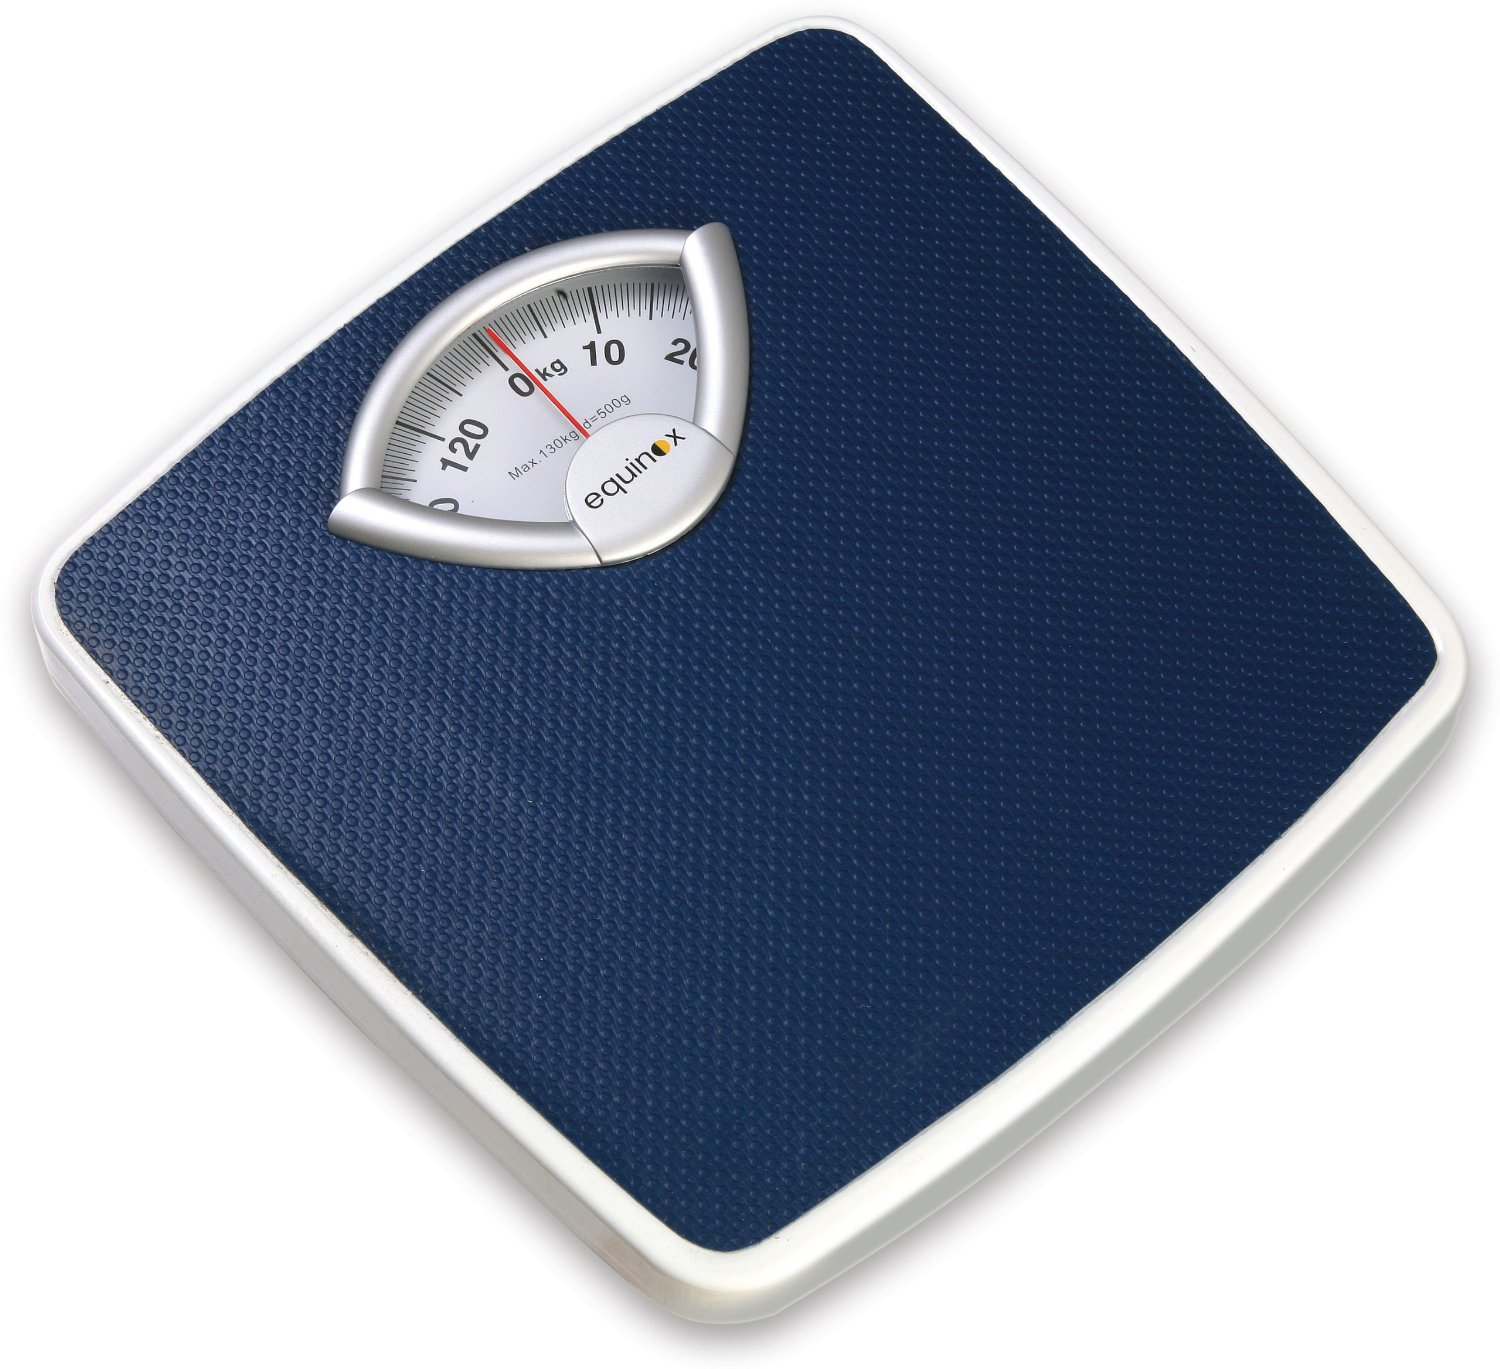 Equinox Weighing Scale Analog Br 9201 Buy Online At Best Price In India From